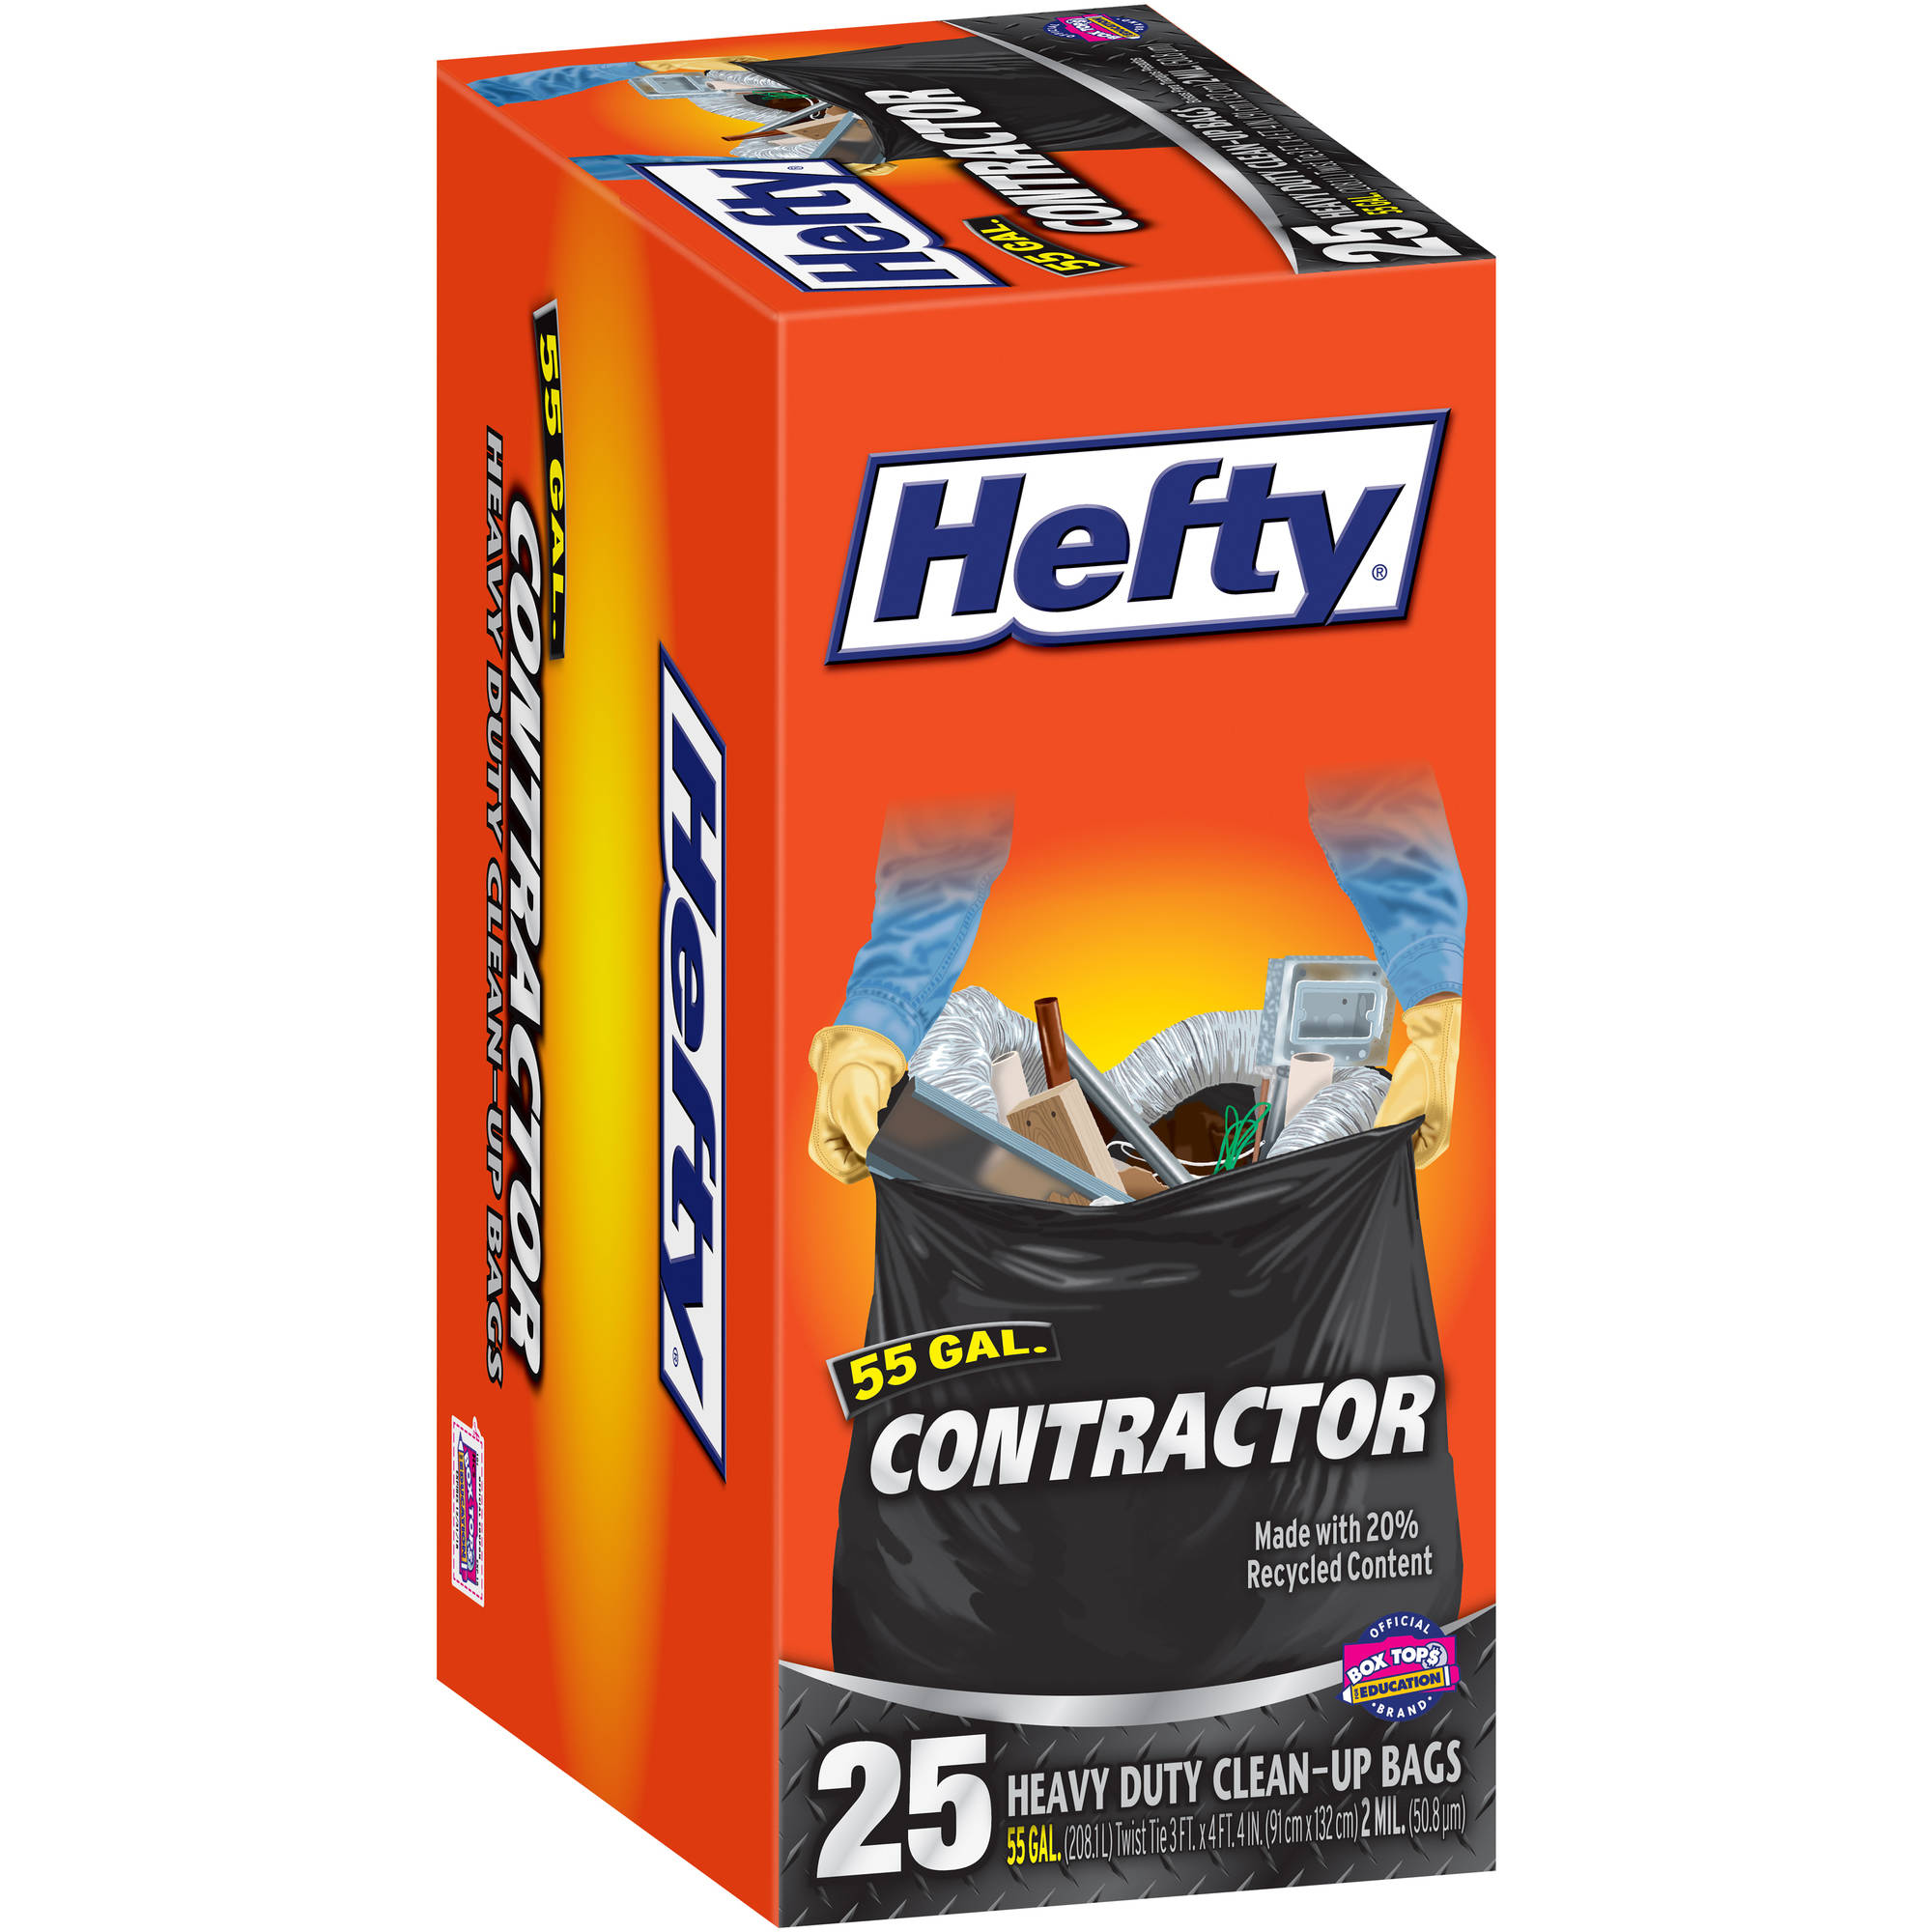 Hefty Contractor Heavy Duty Twist Tie Clean-Up Trash Bags, 55 gal, 25 count